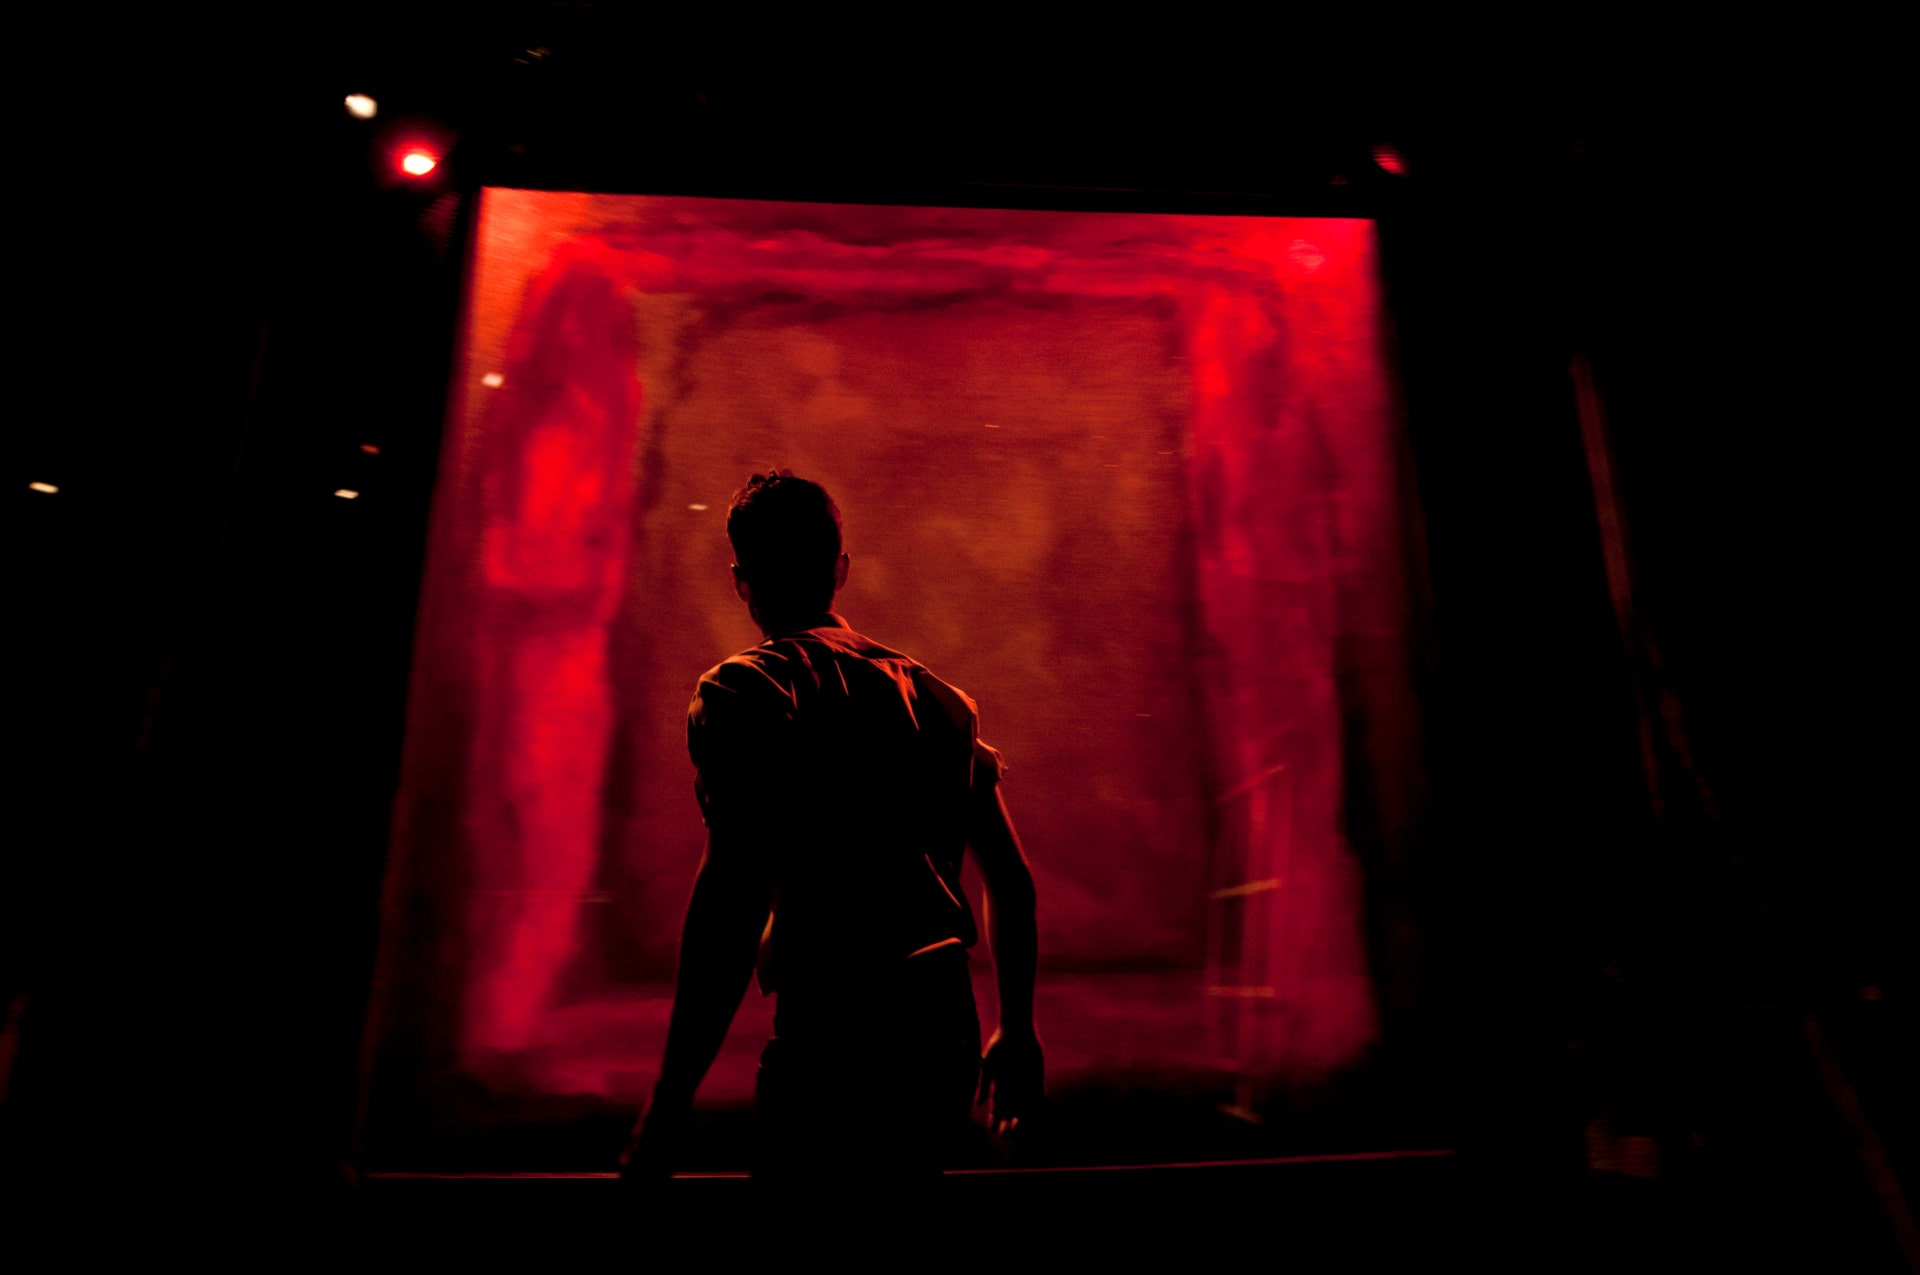 Man in silhouette stands facing brightly lit red canvas.